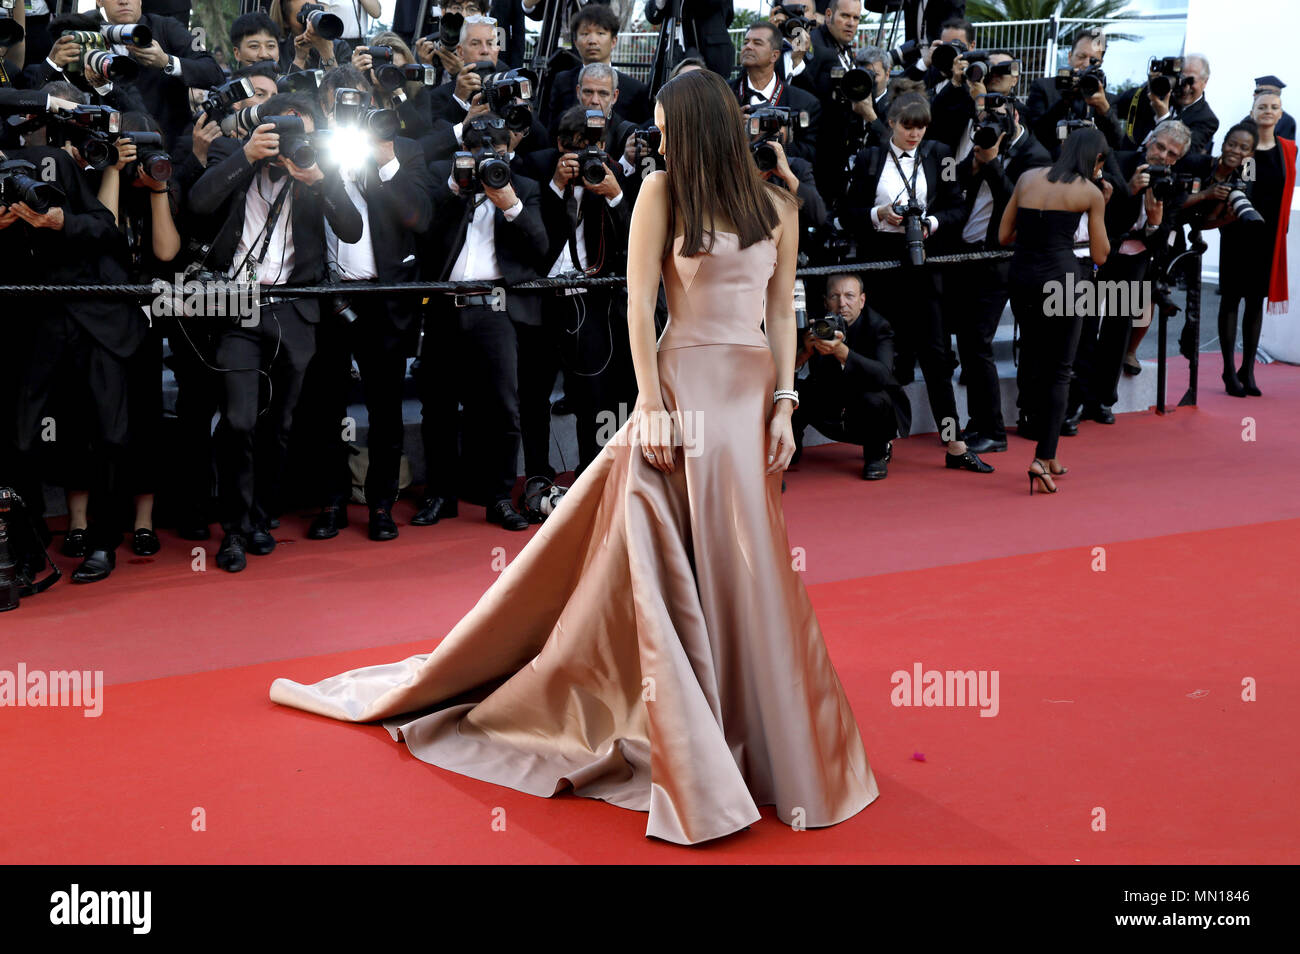 Bella Hadid attending the 'Ash Is Purest White / Jiang hu er nv' premiere during the 71st Cannes Film Festival at the Palais des Festivals on May 11, 2018 in Cannes, France | usage worldwide Stock Photo